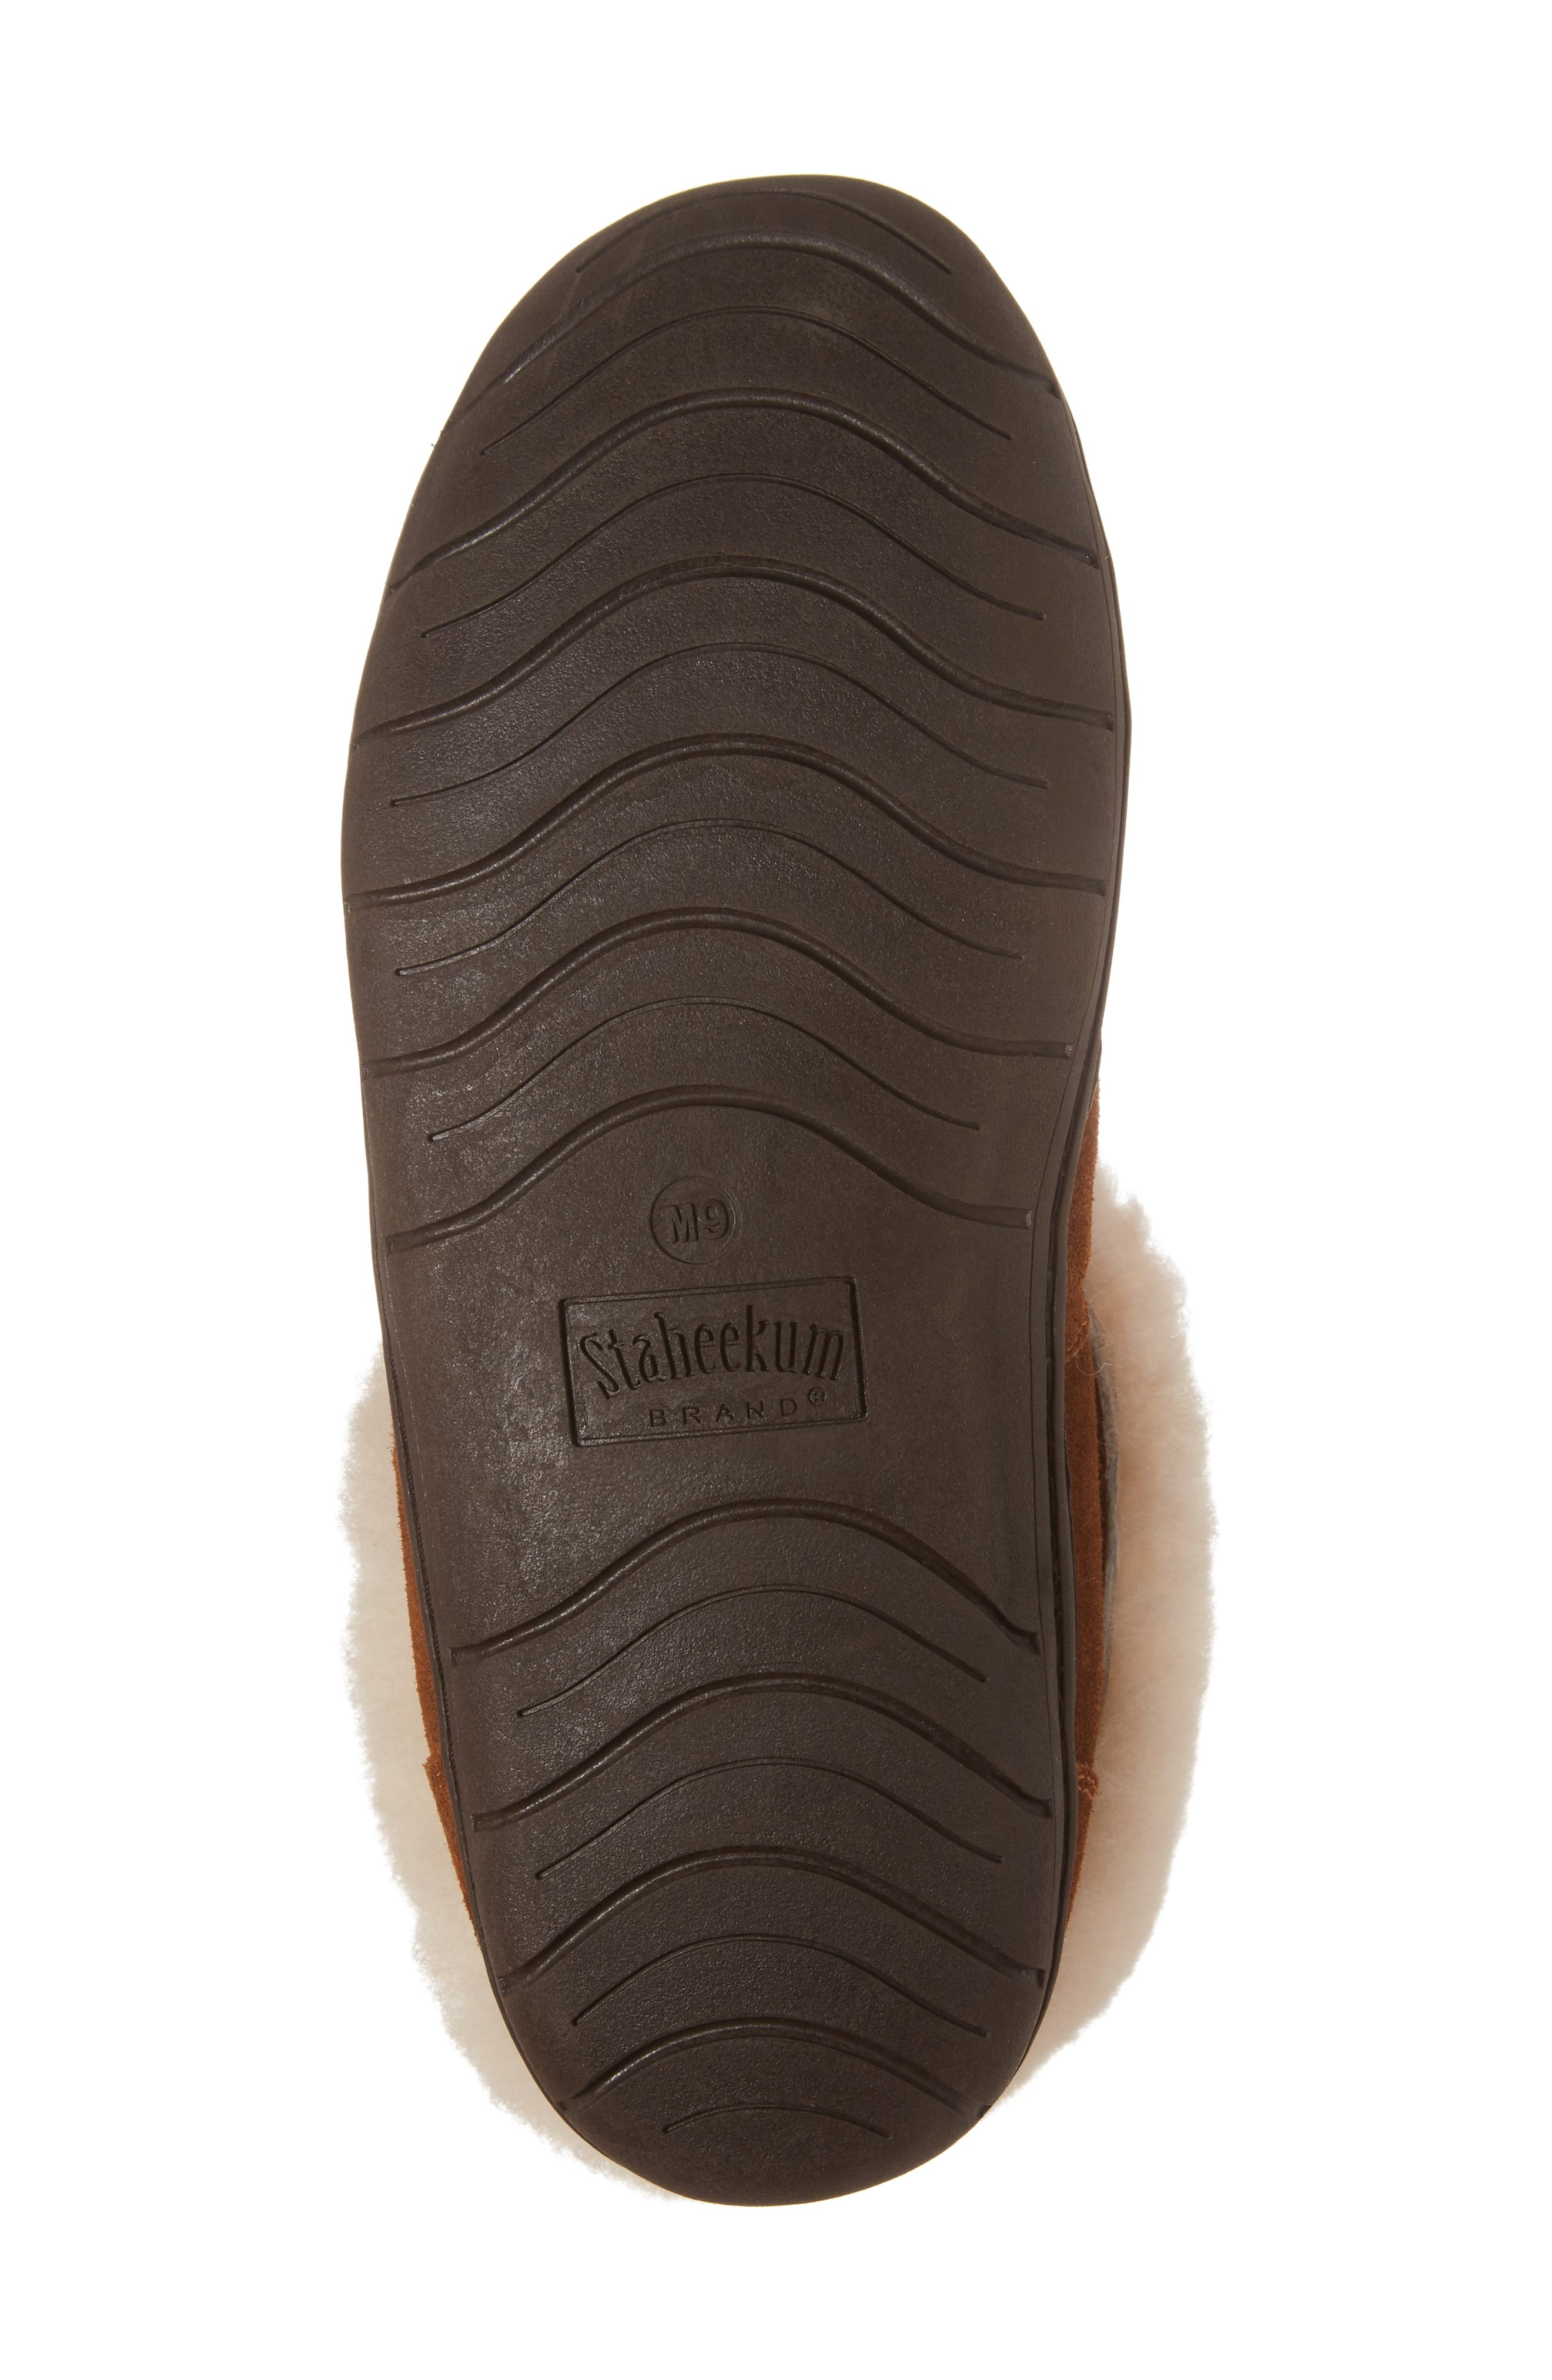 Tundra Slipper Bootie with Genuine Shearling Lining,                             Alternate thumbnail 6, color,                             212